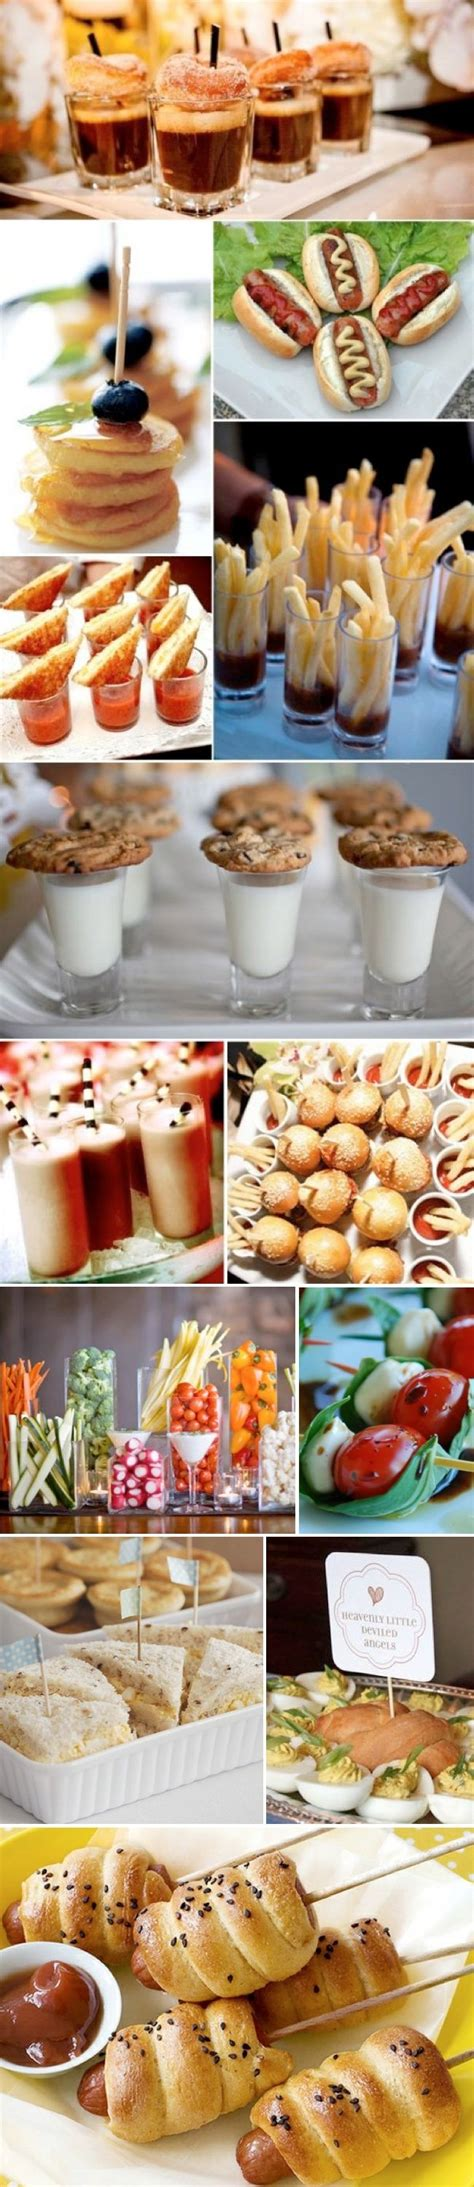 finger foods for finger foods perfect for a party recipes pinterest